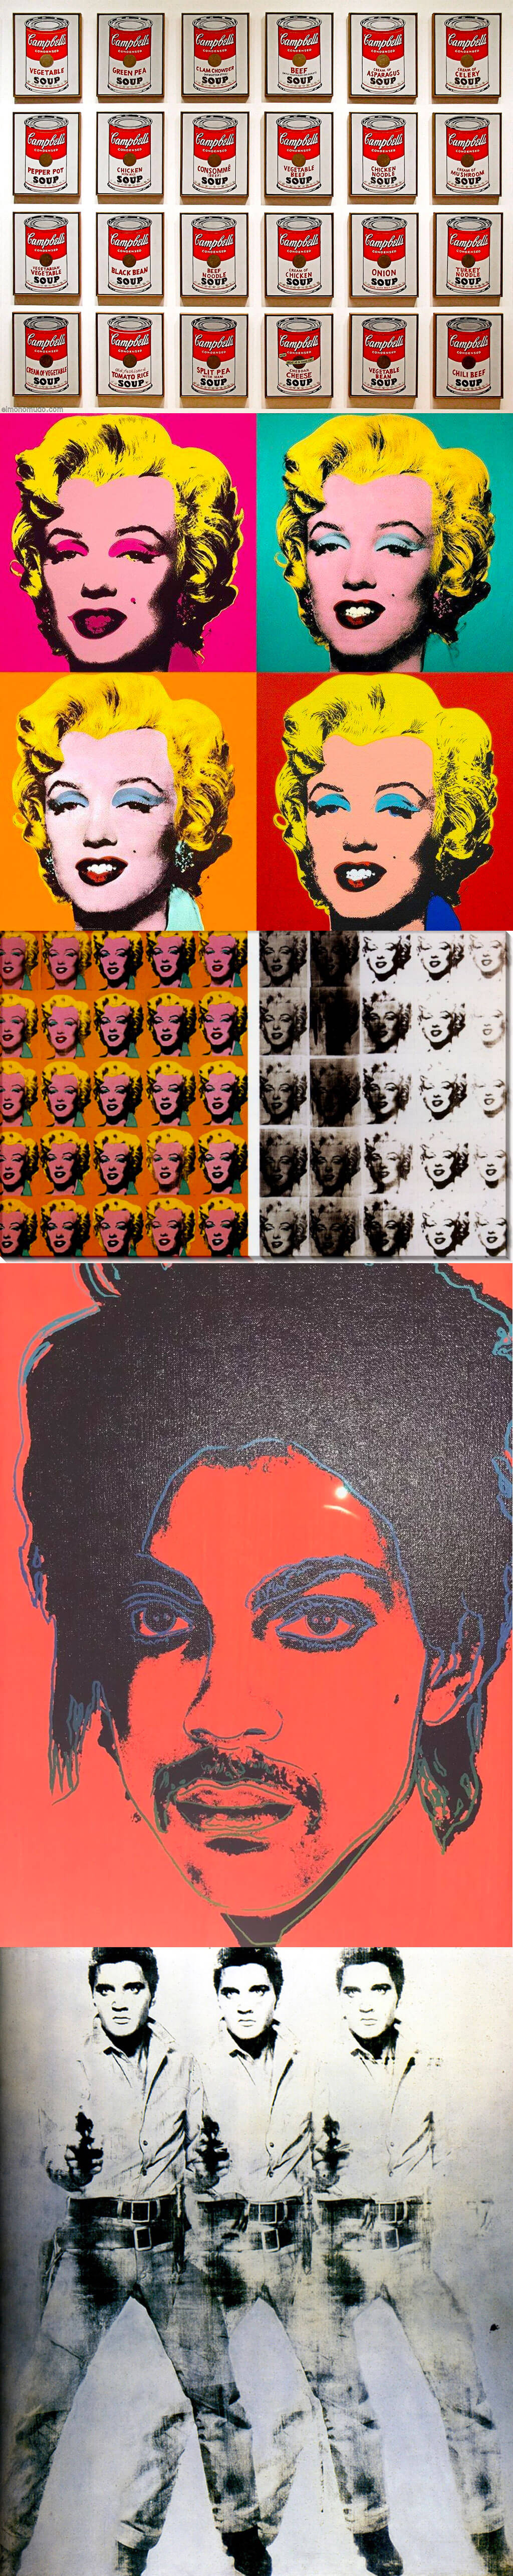 Pop Art by Andy Warhol